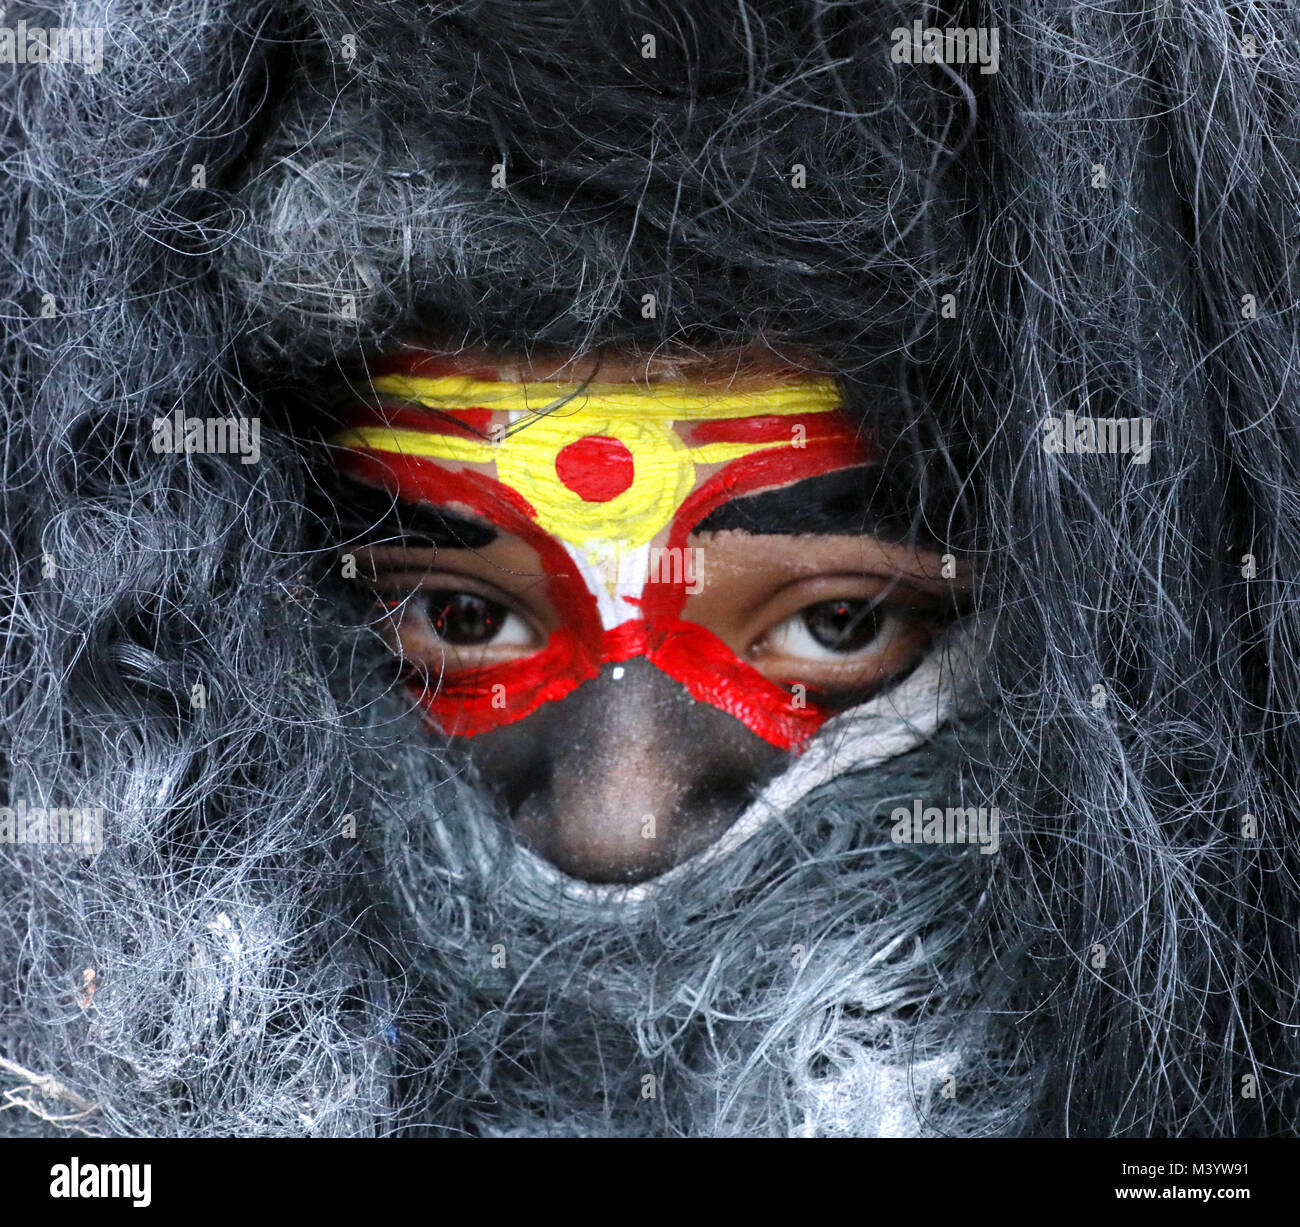 Jammu, India. 12th Feb, 2018. An Indian child dressed as Lord Shiva takes part in the Maha Shivratri procession - Stock Image